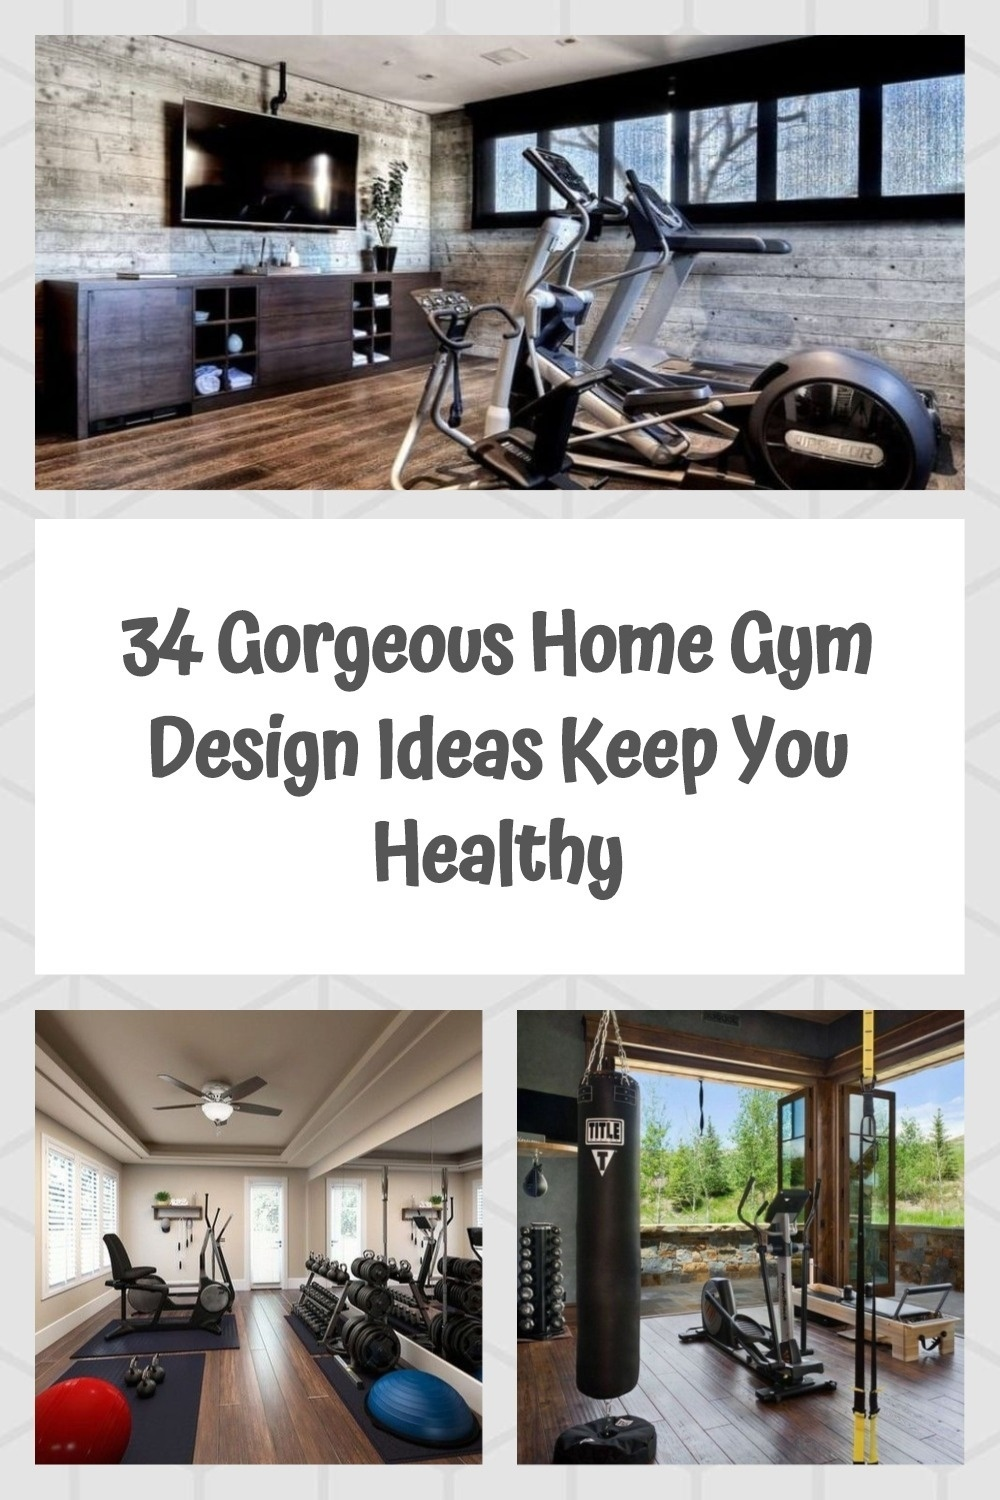 34 Gorgeous Home Gym Design Ideas Keep You Healthy